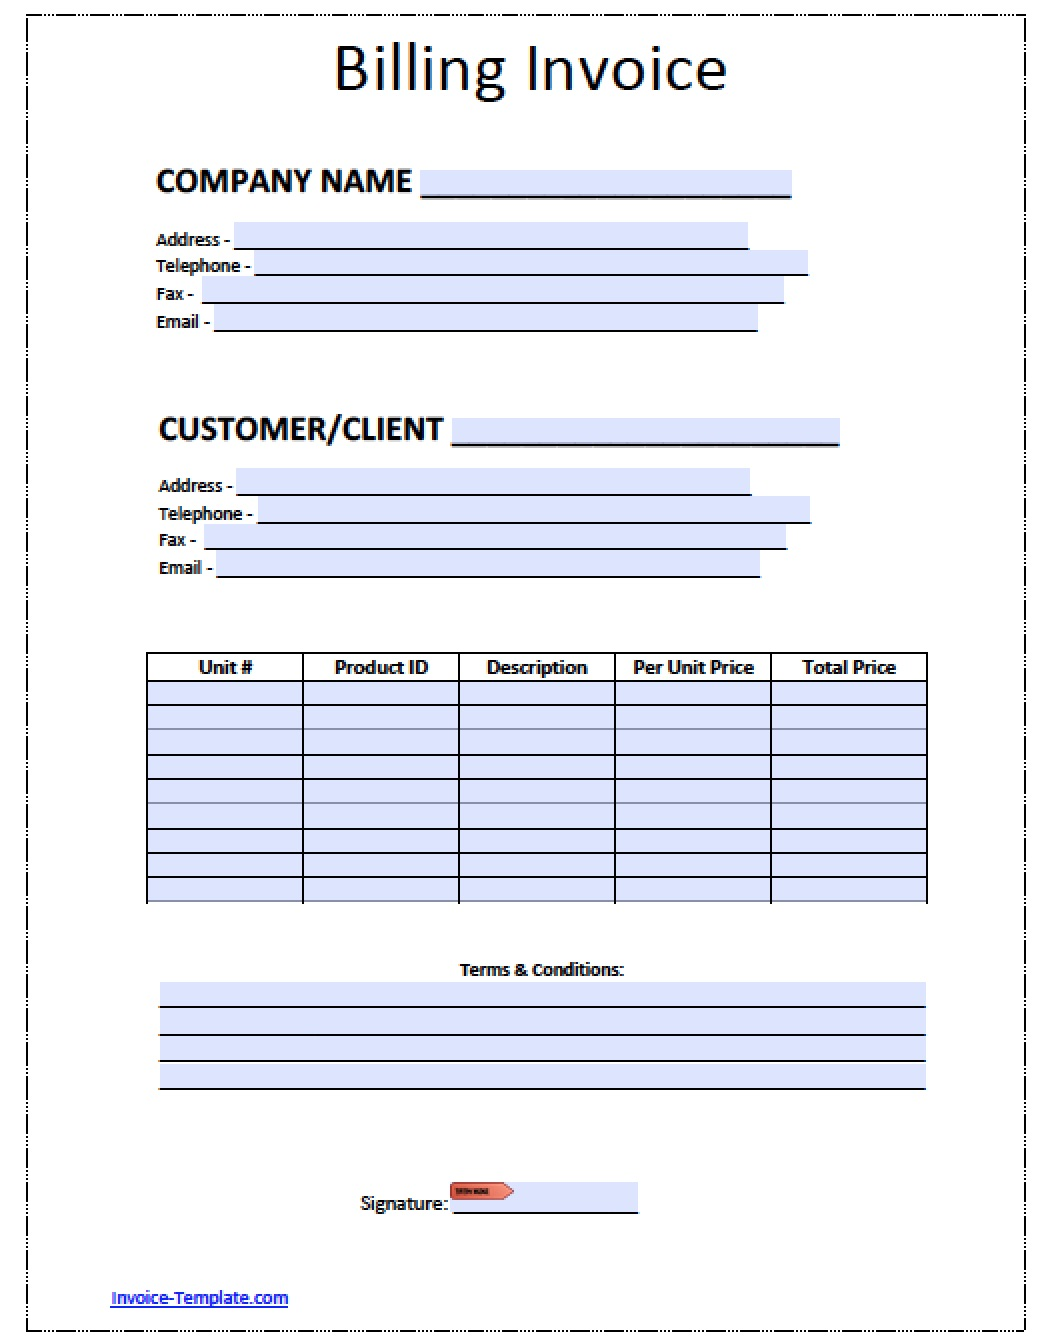 format for invoice bill Ecza.solinf.co